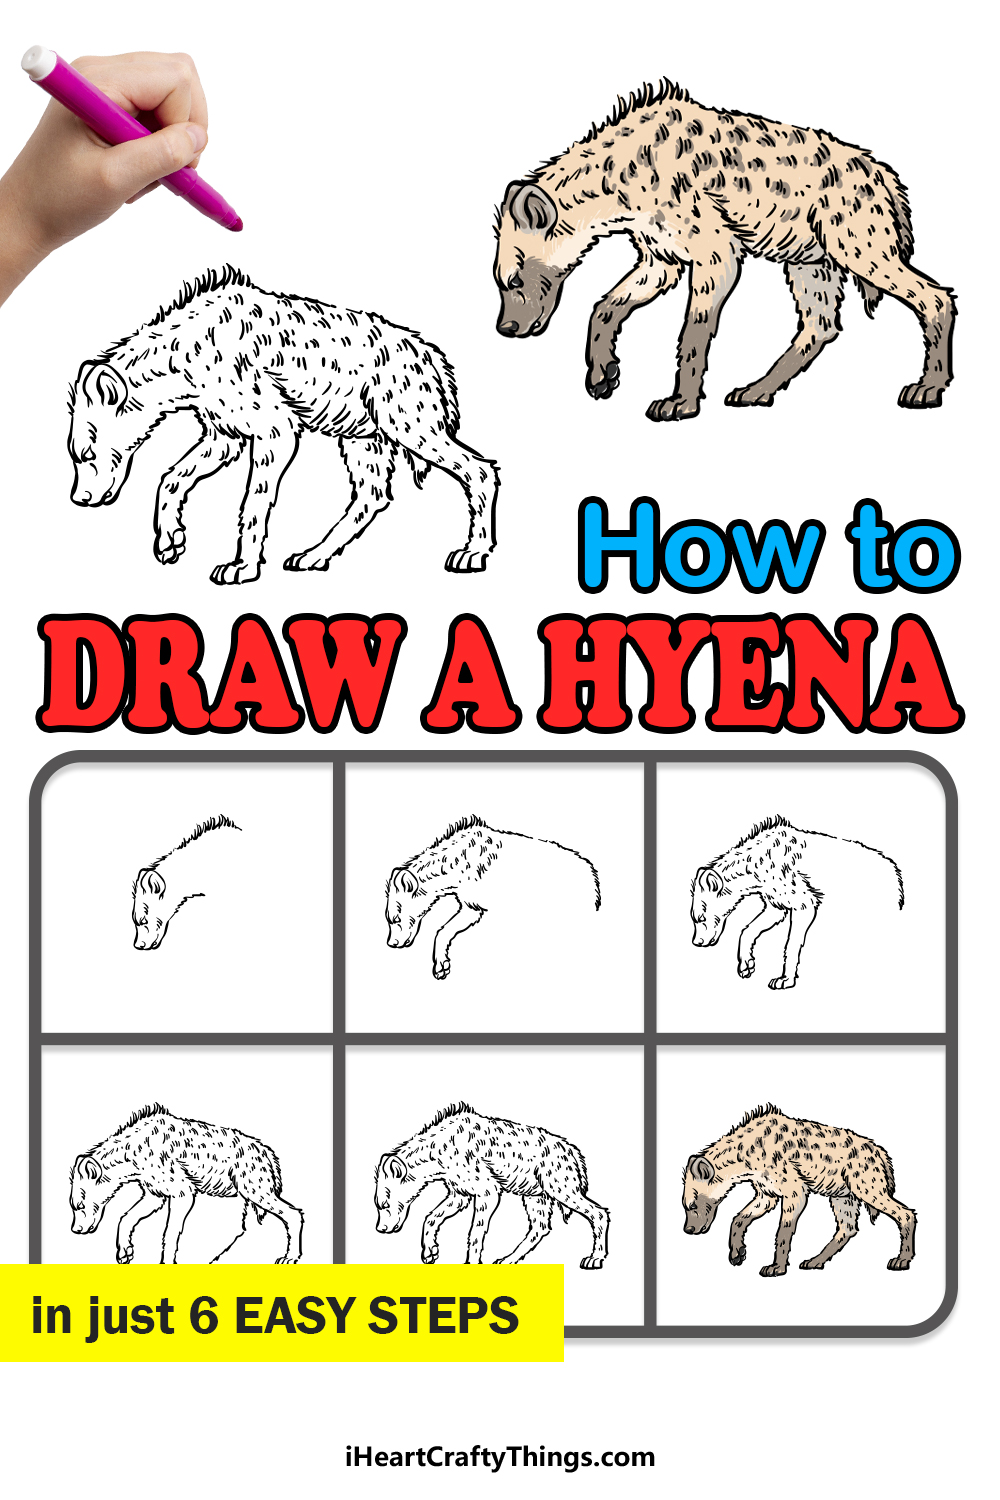 how to draw a hyena in 6 easy steps